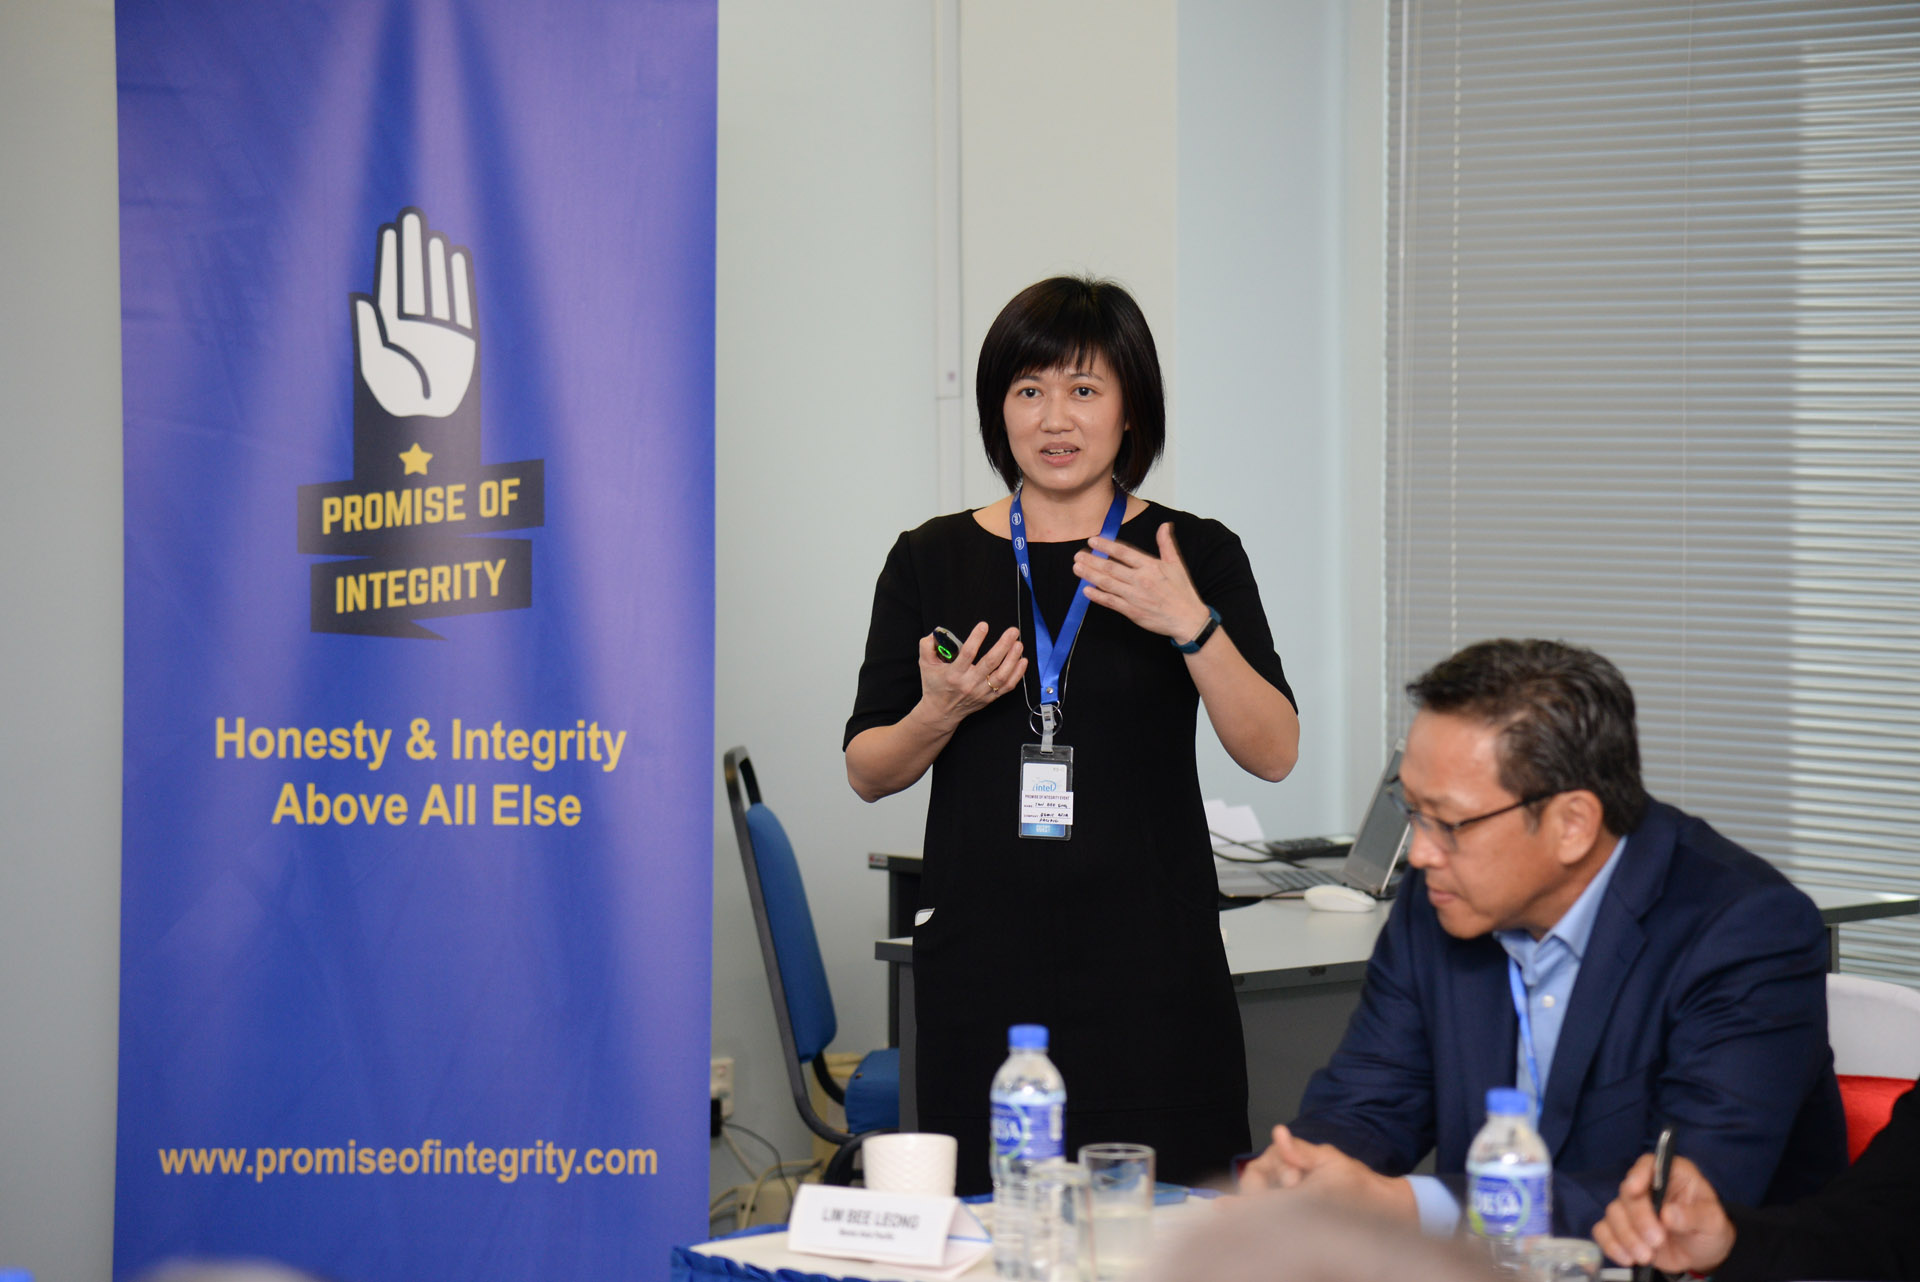 Ms Tan Bee Eng (Bemis Asia Pacific), co-lead of the Promise of Integrity Supplier Work Group giving a presentation during the Executive Dialogue